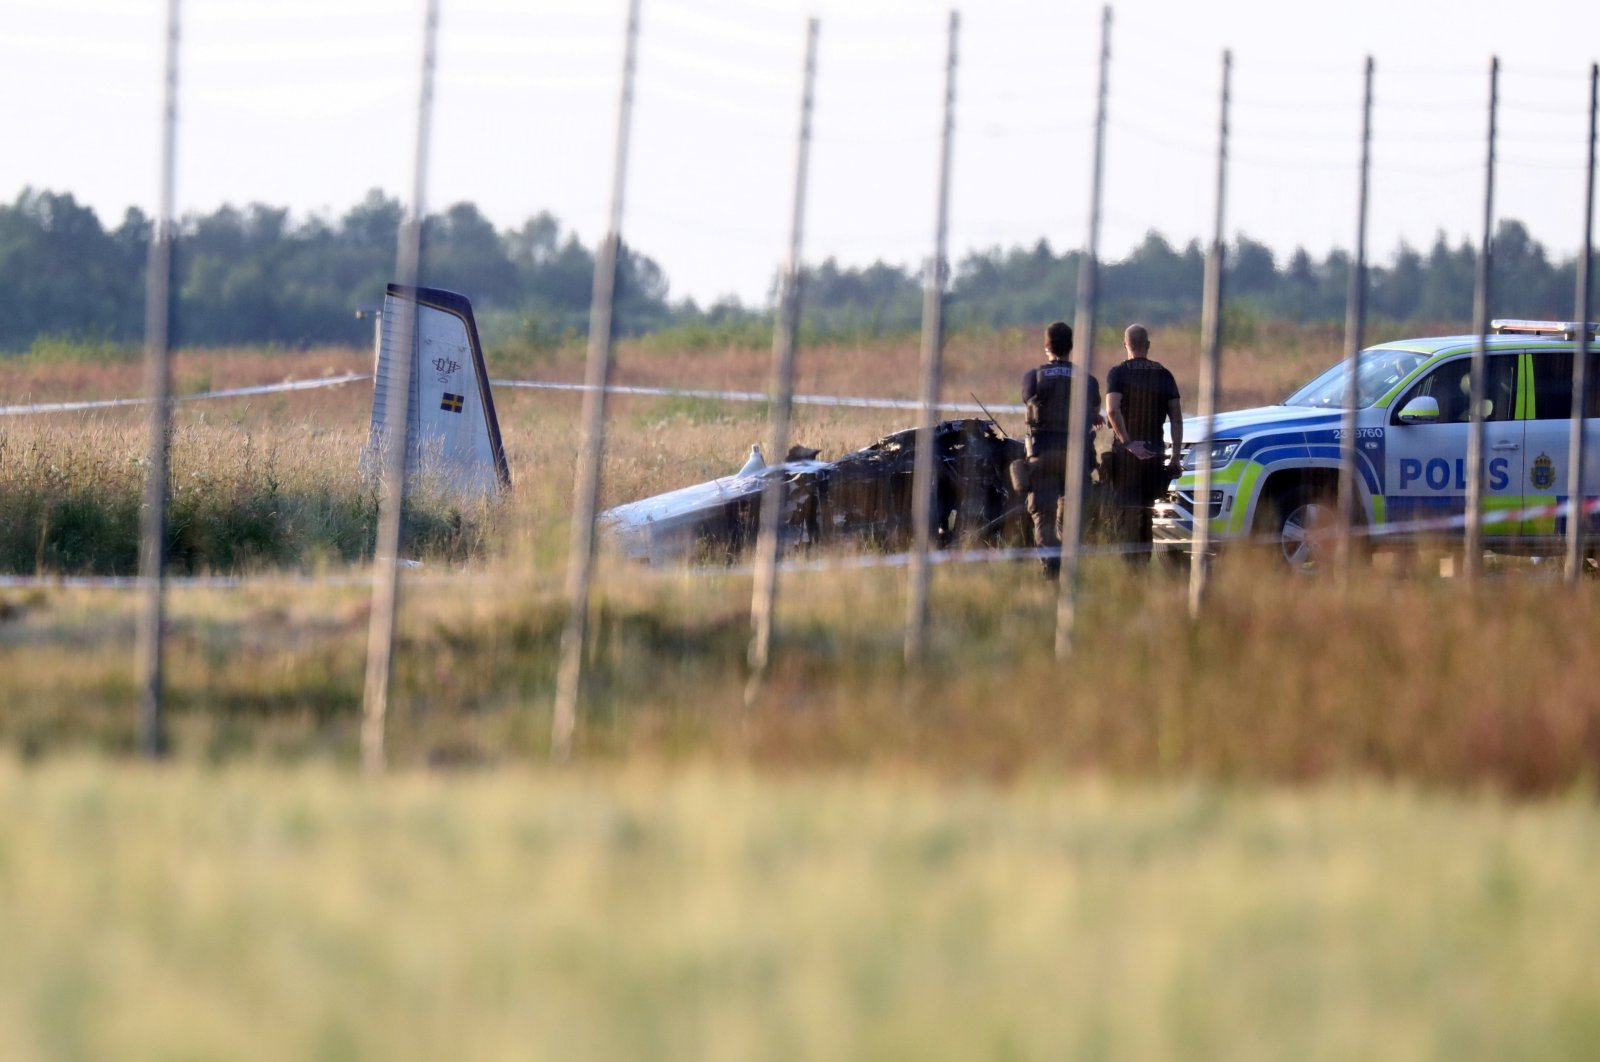 Police officers investigate the site where a small aircraft crashed at Orebro Airport, Orebro, Sweden, July 8, 2021. (Reuters Photo)